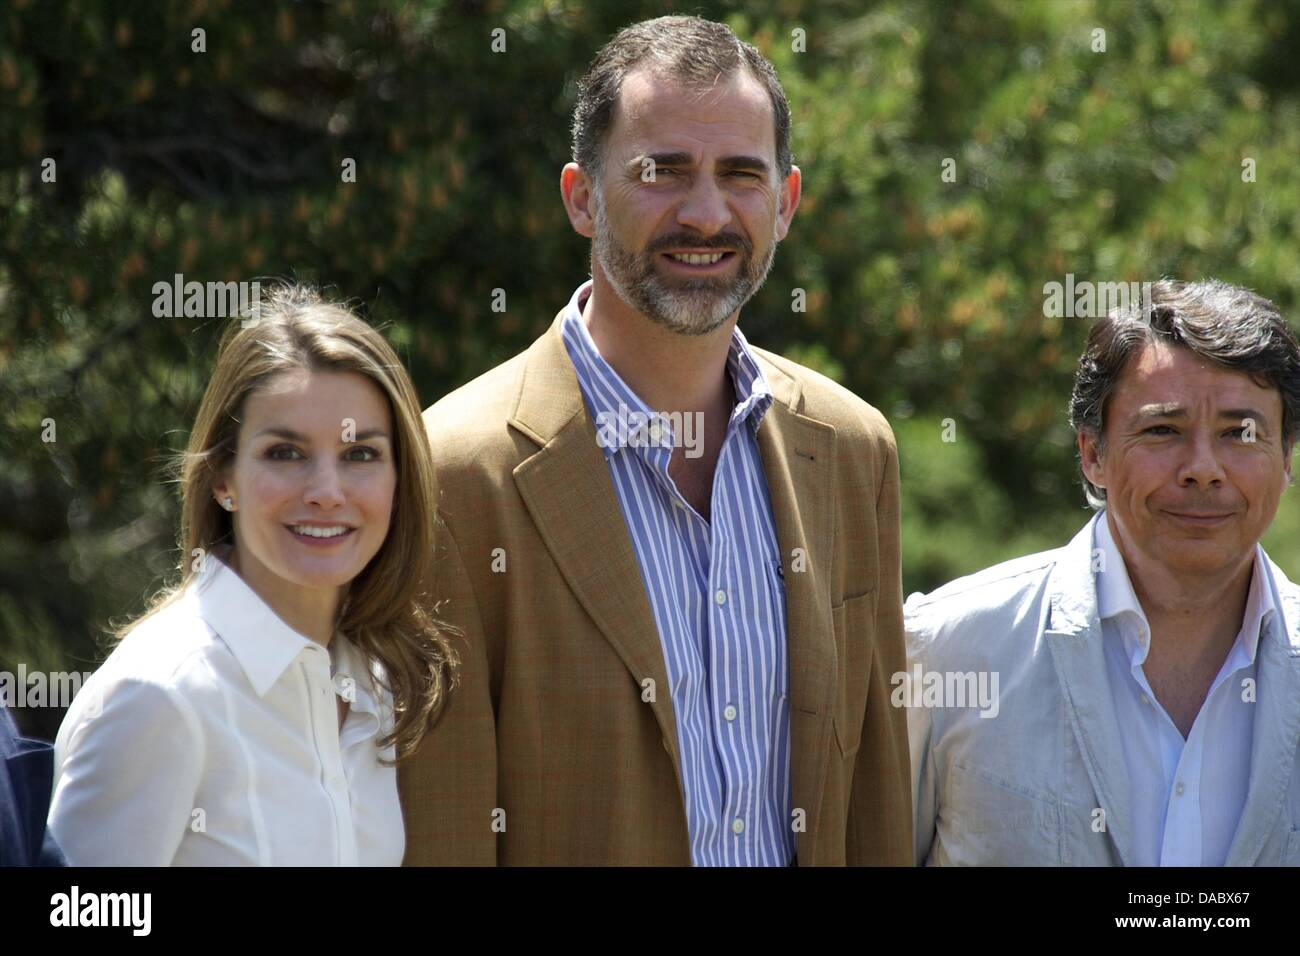 Rascafria, Spain. 10th July, 2013. Prince Felipe of Spain and Princess Letizia of Spain visit the National Park Stock Photo